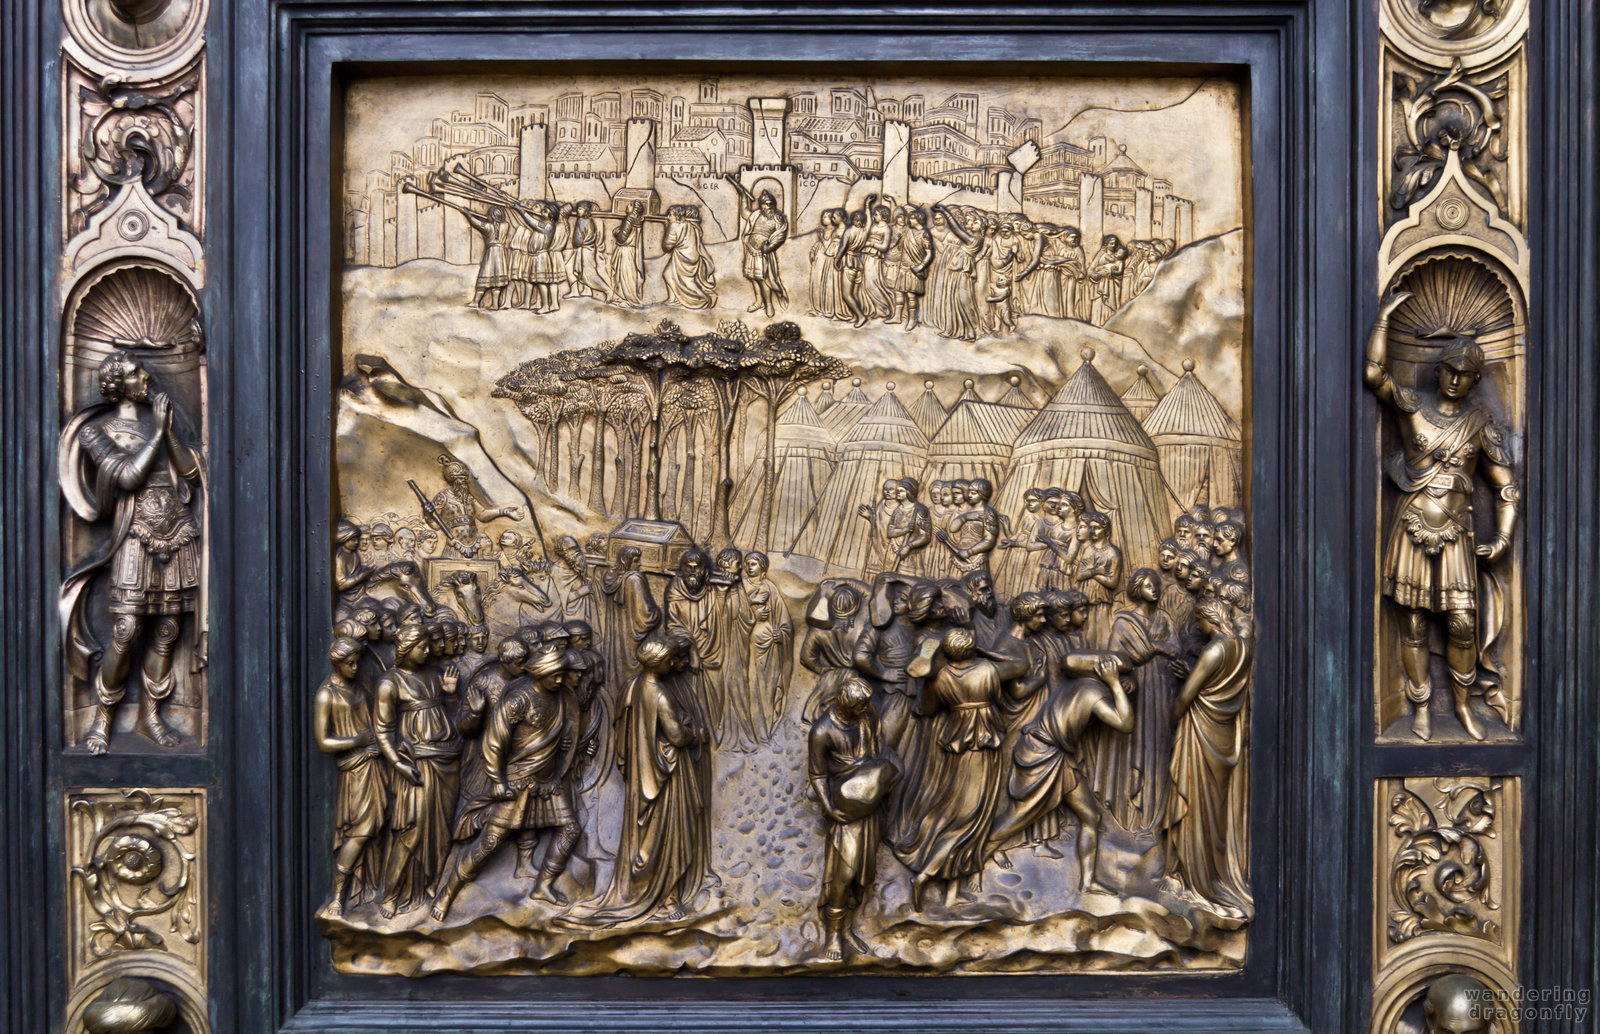 Another relief of the cathedral's gate -- art, relief